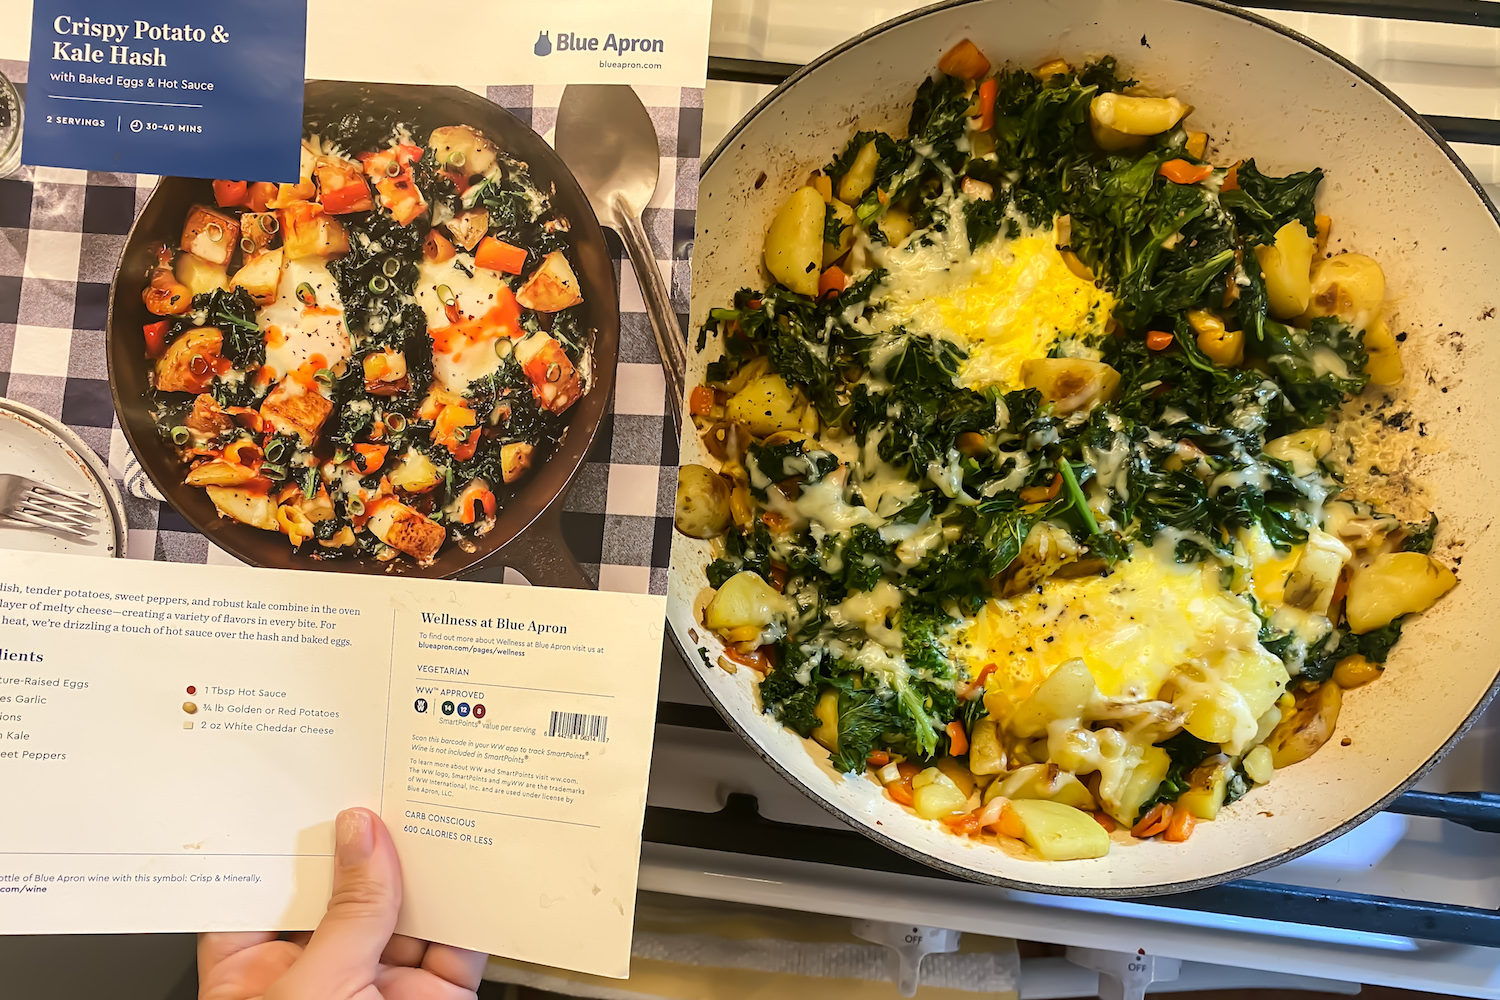 Why I Love Blue Apron